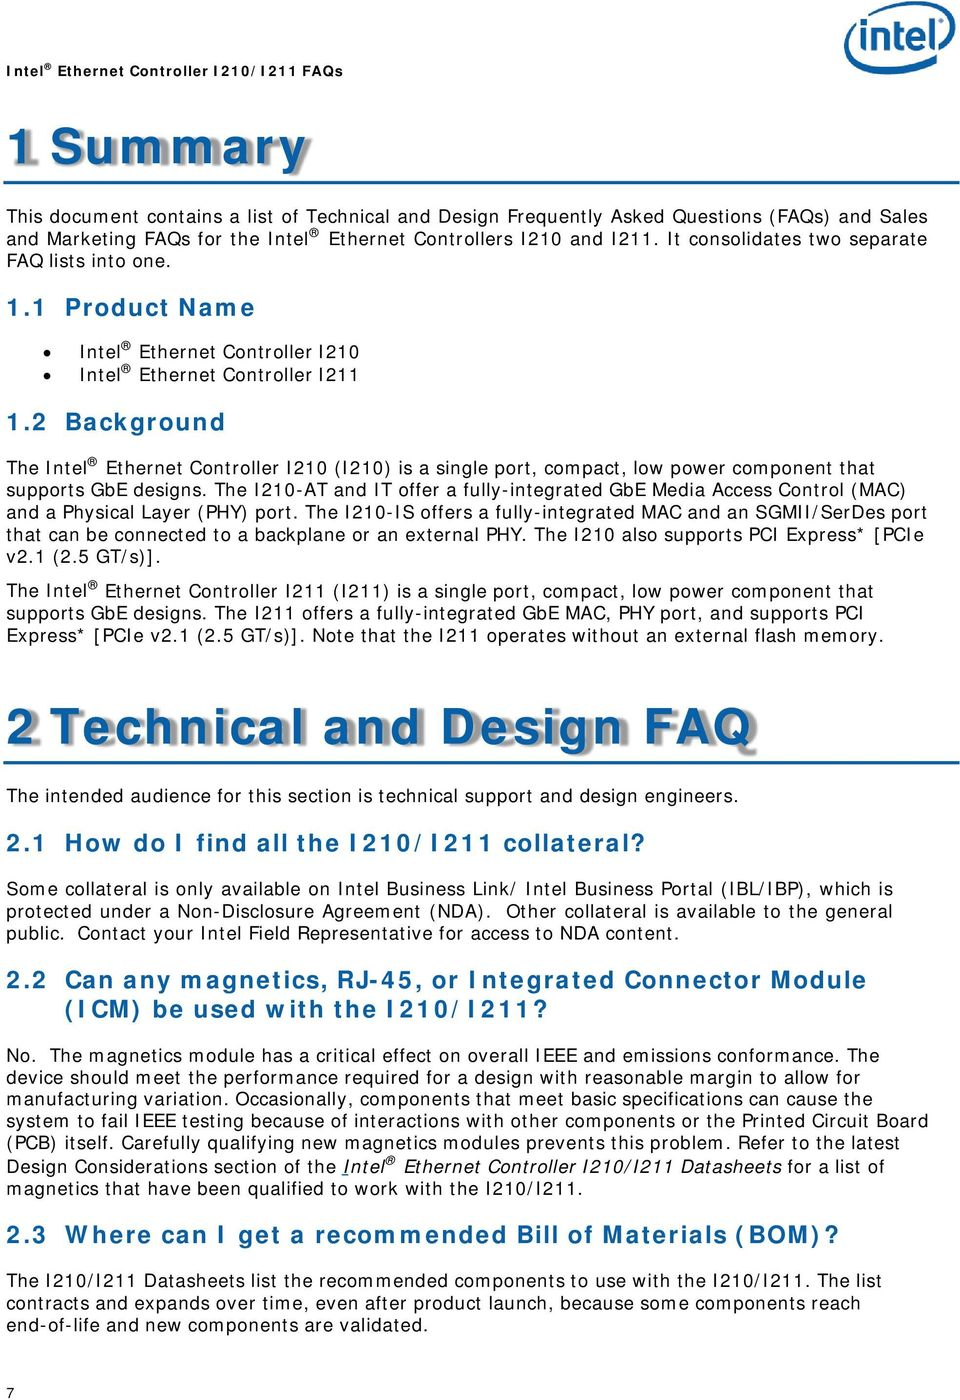 Intel Ethernet Controller I210/I211 Frequently Asked Questions - PDF